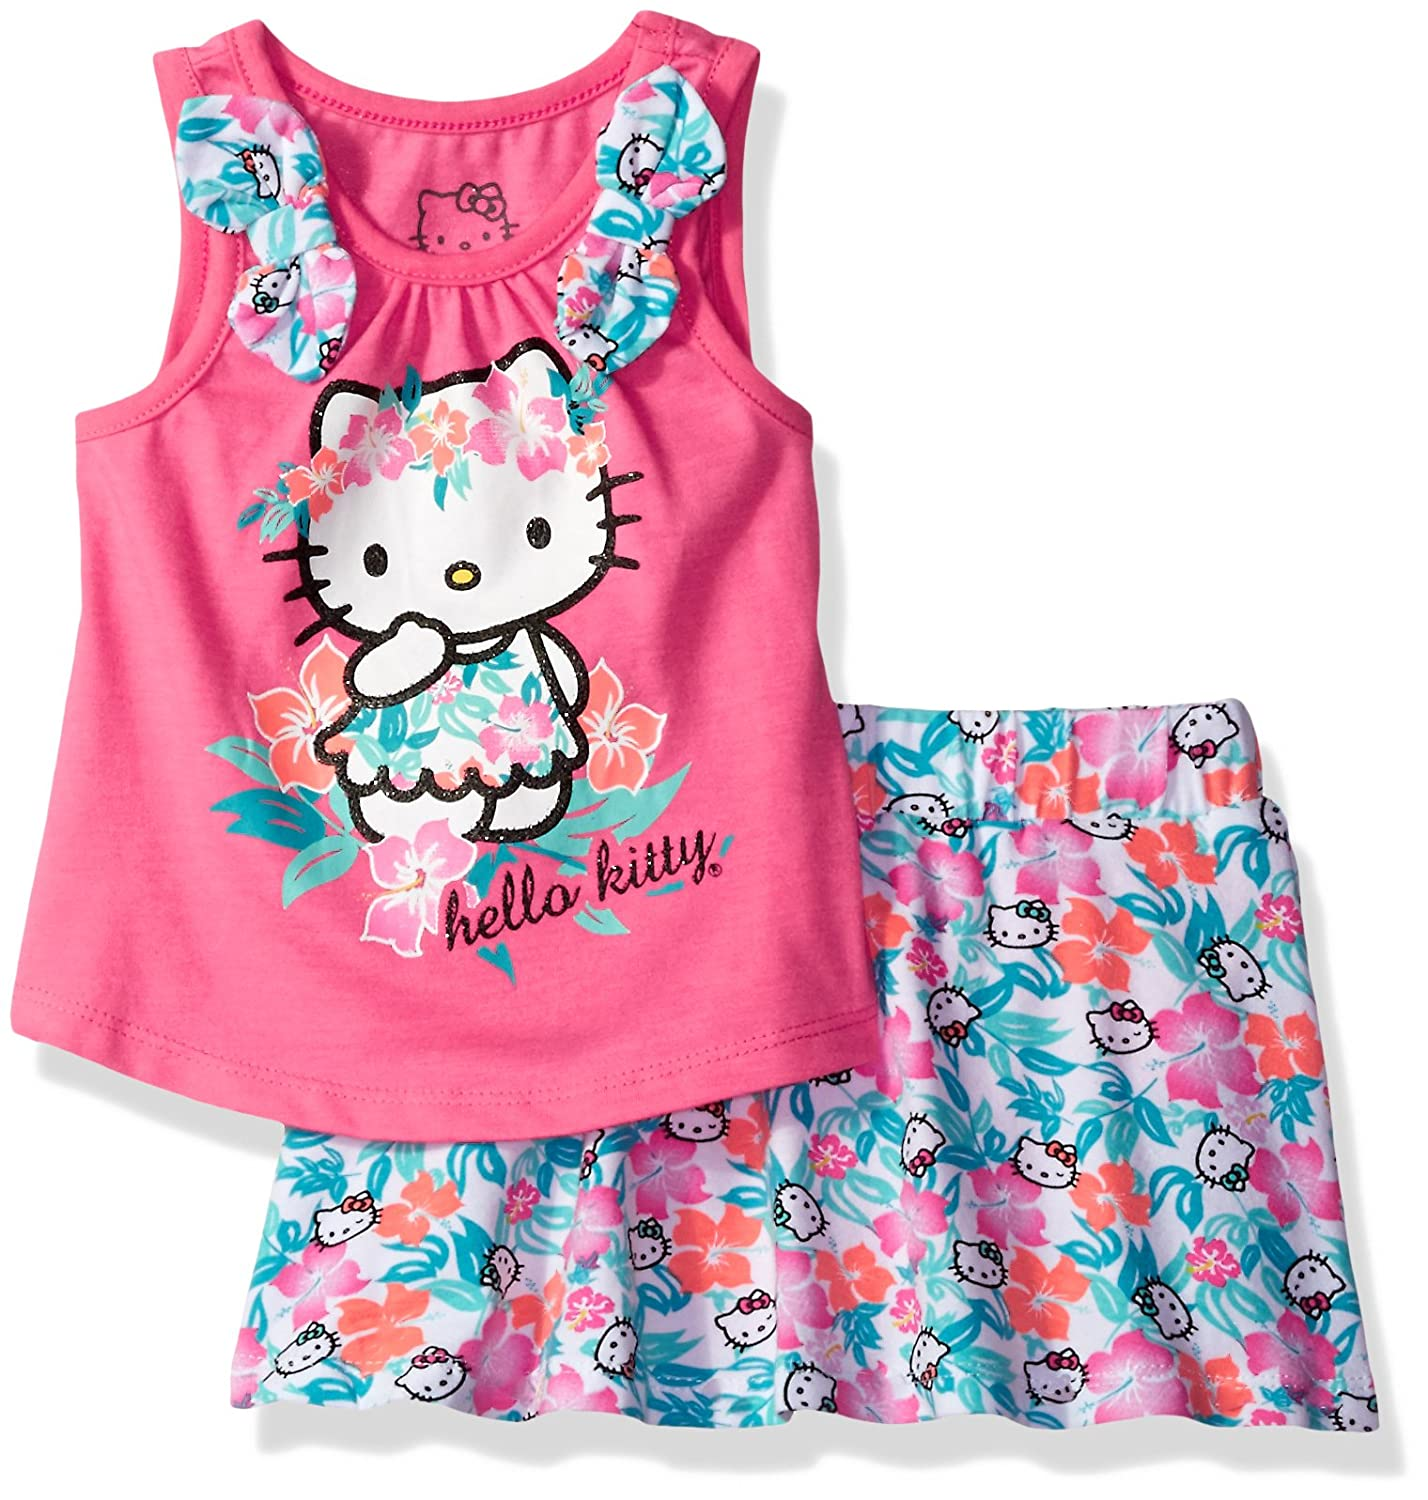 Hello Kitty Girls' Skirt Set K3162